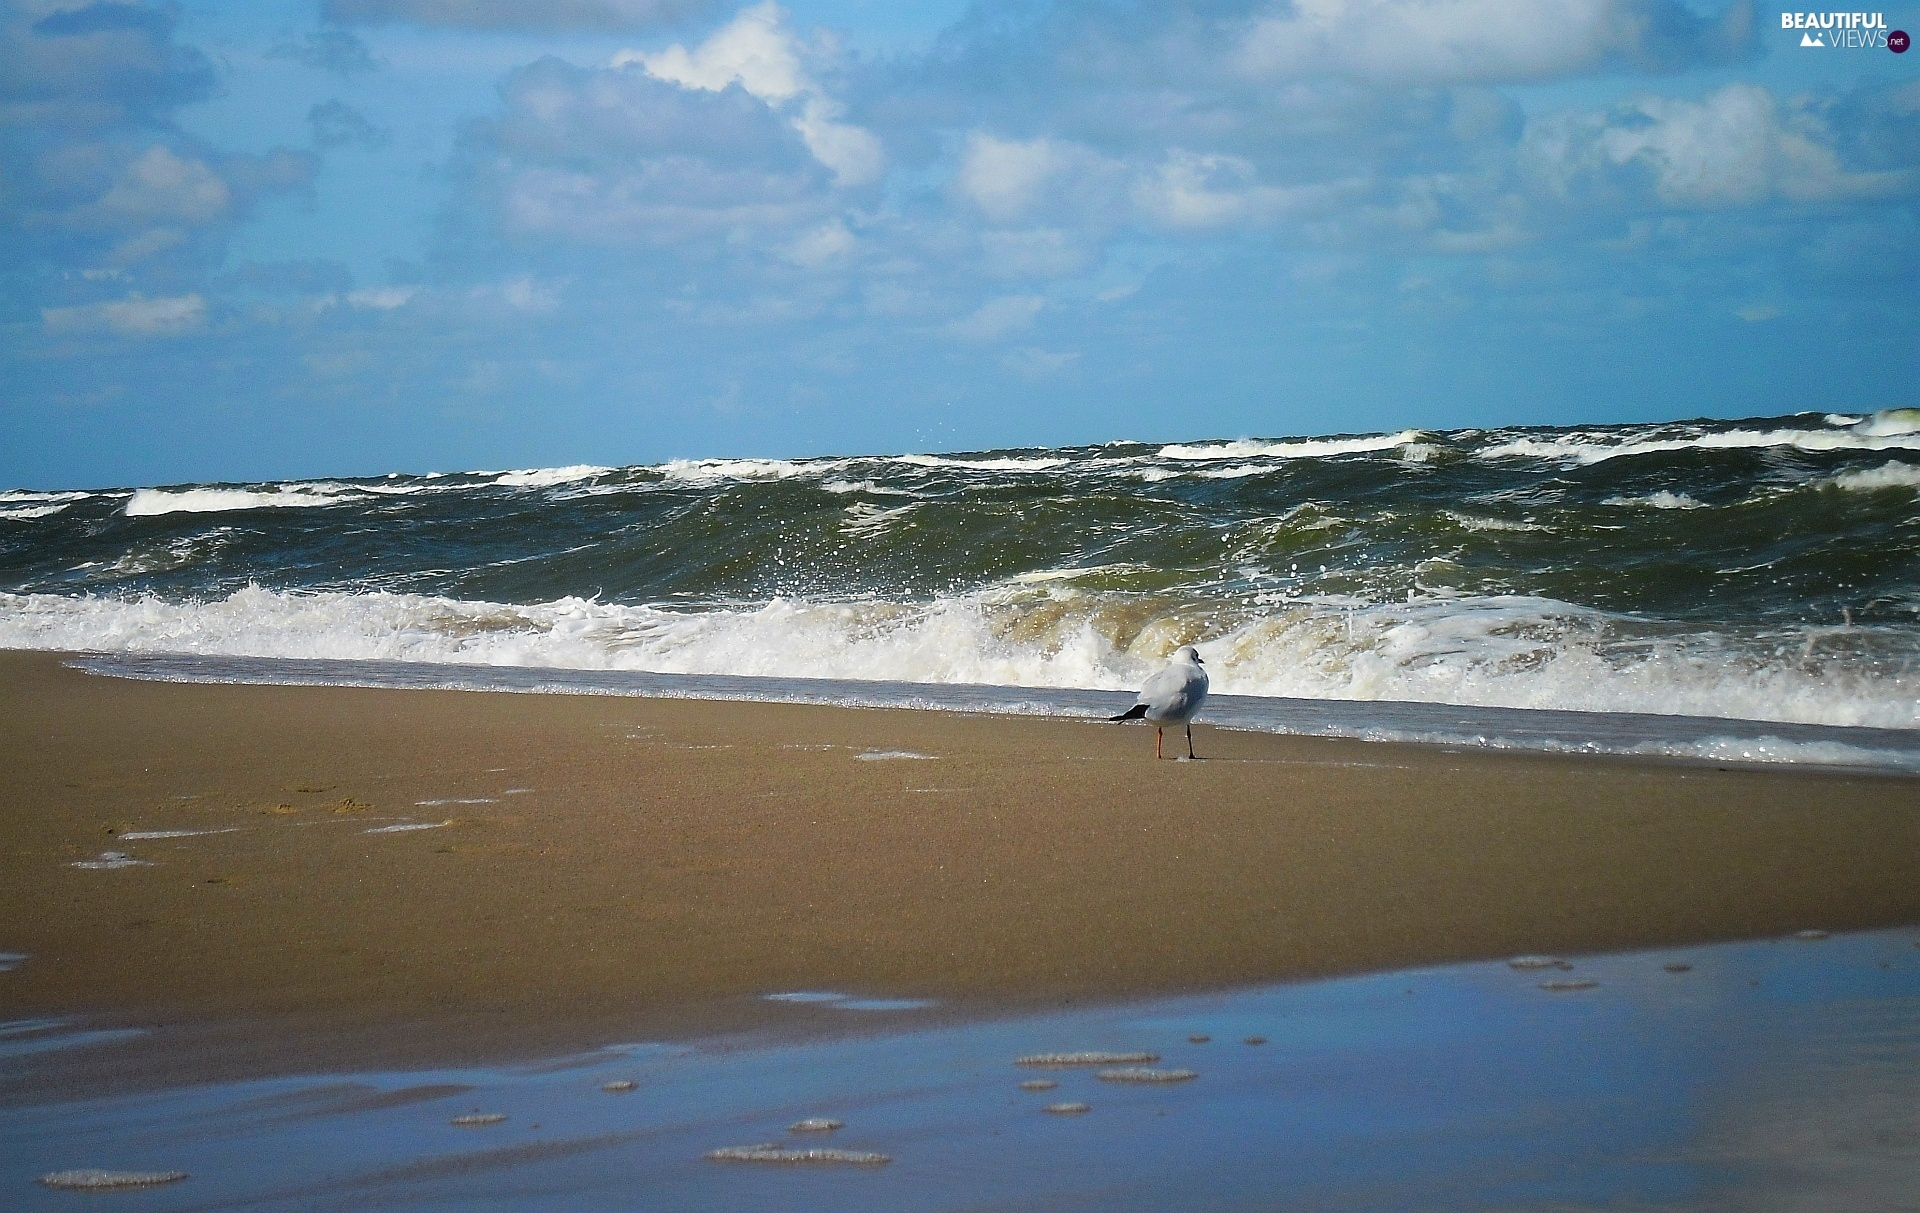 seagull, Waves, sea, Beaches, summer